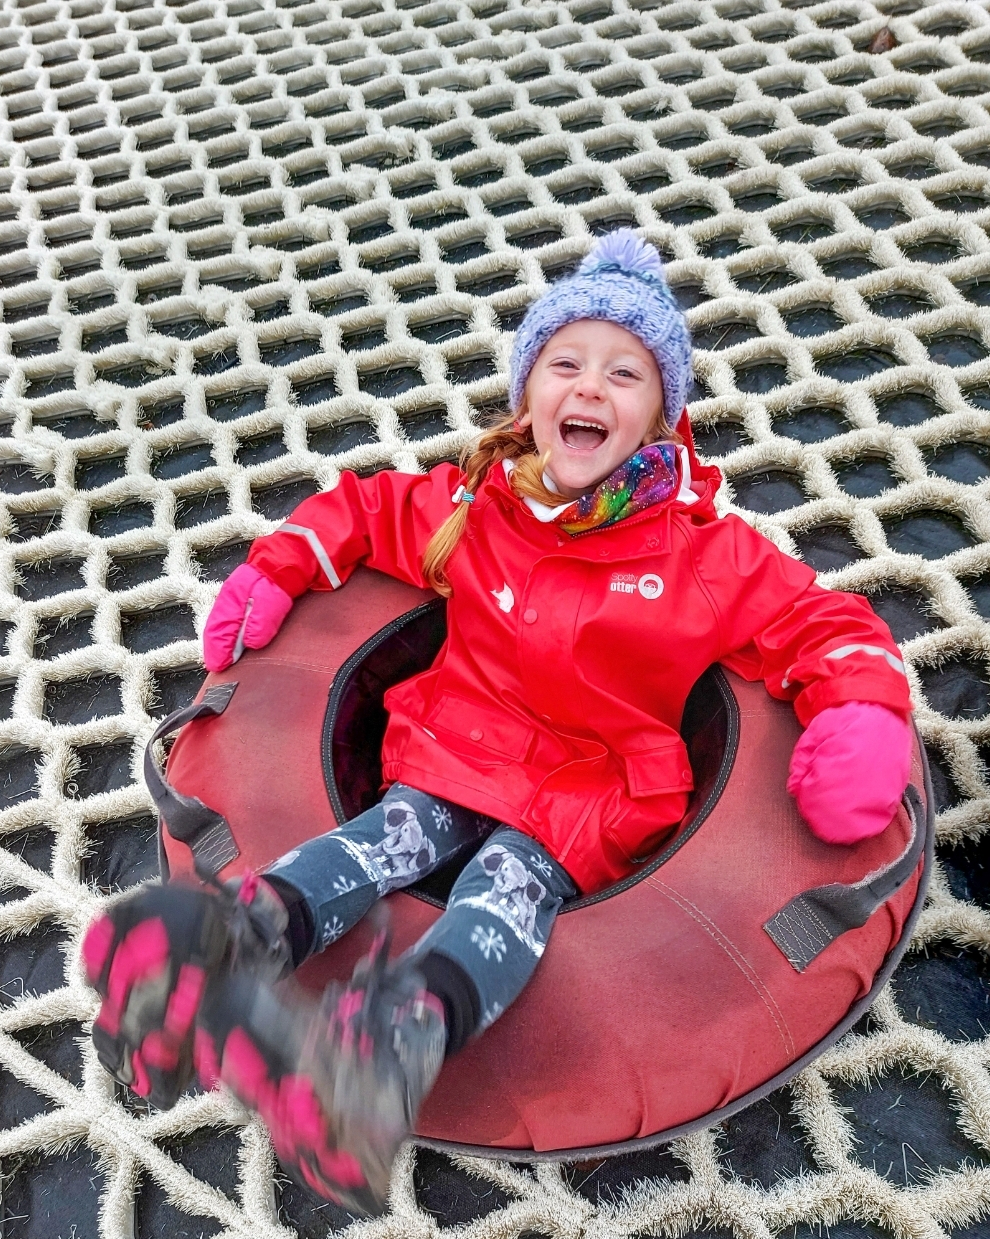 Lily had truly the best day out at Swadlincote Snowsports Centre